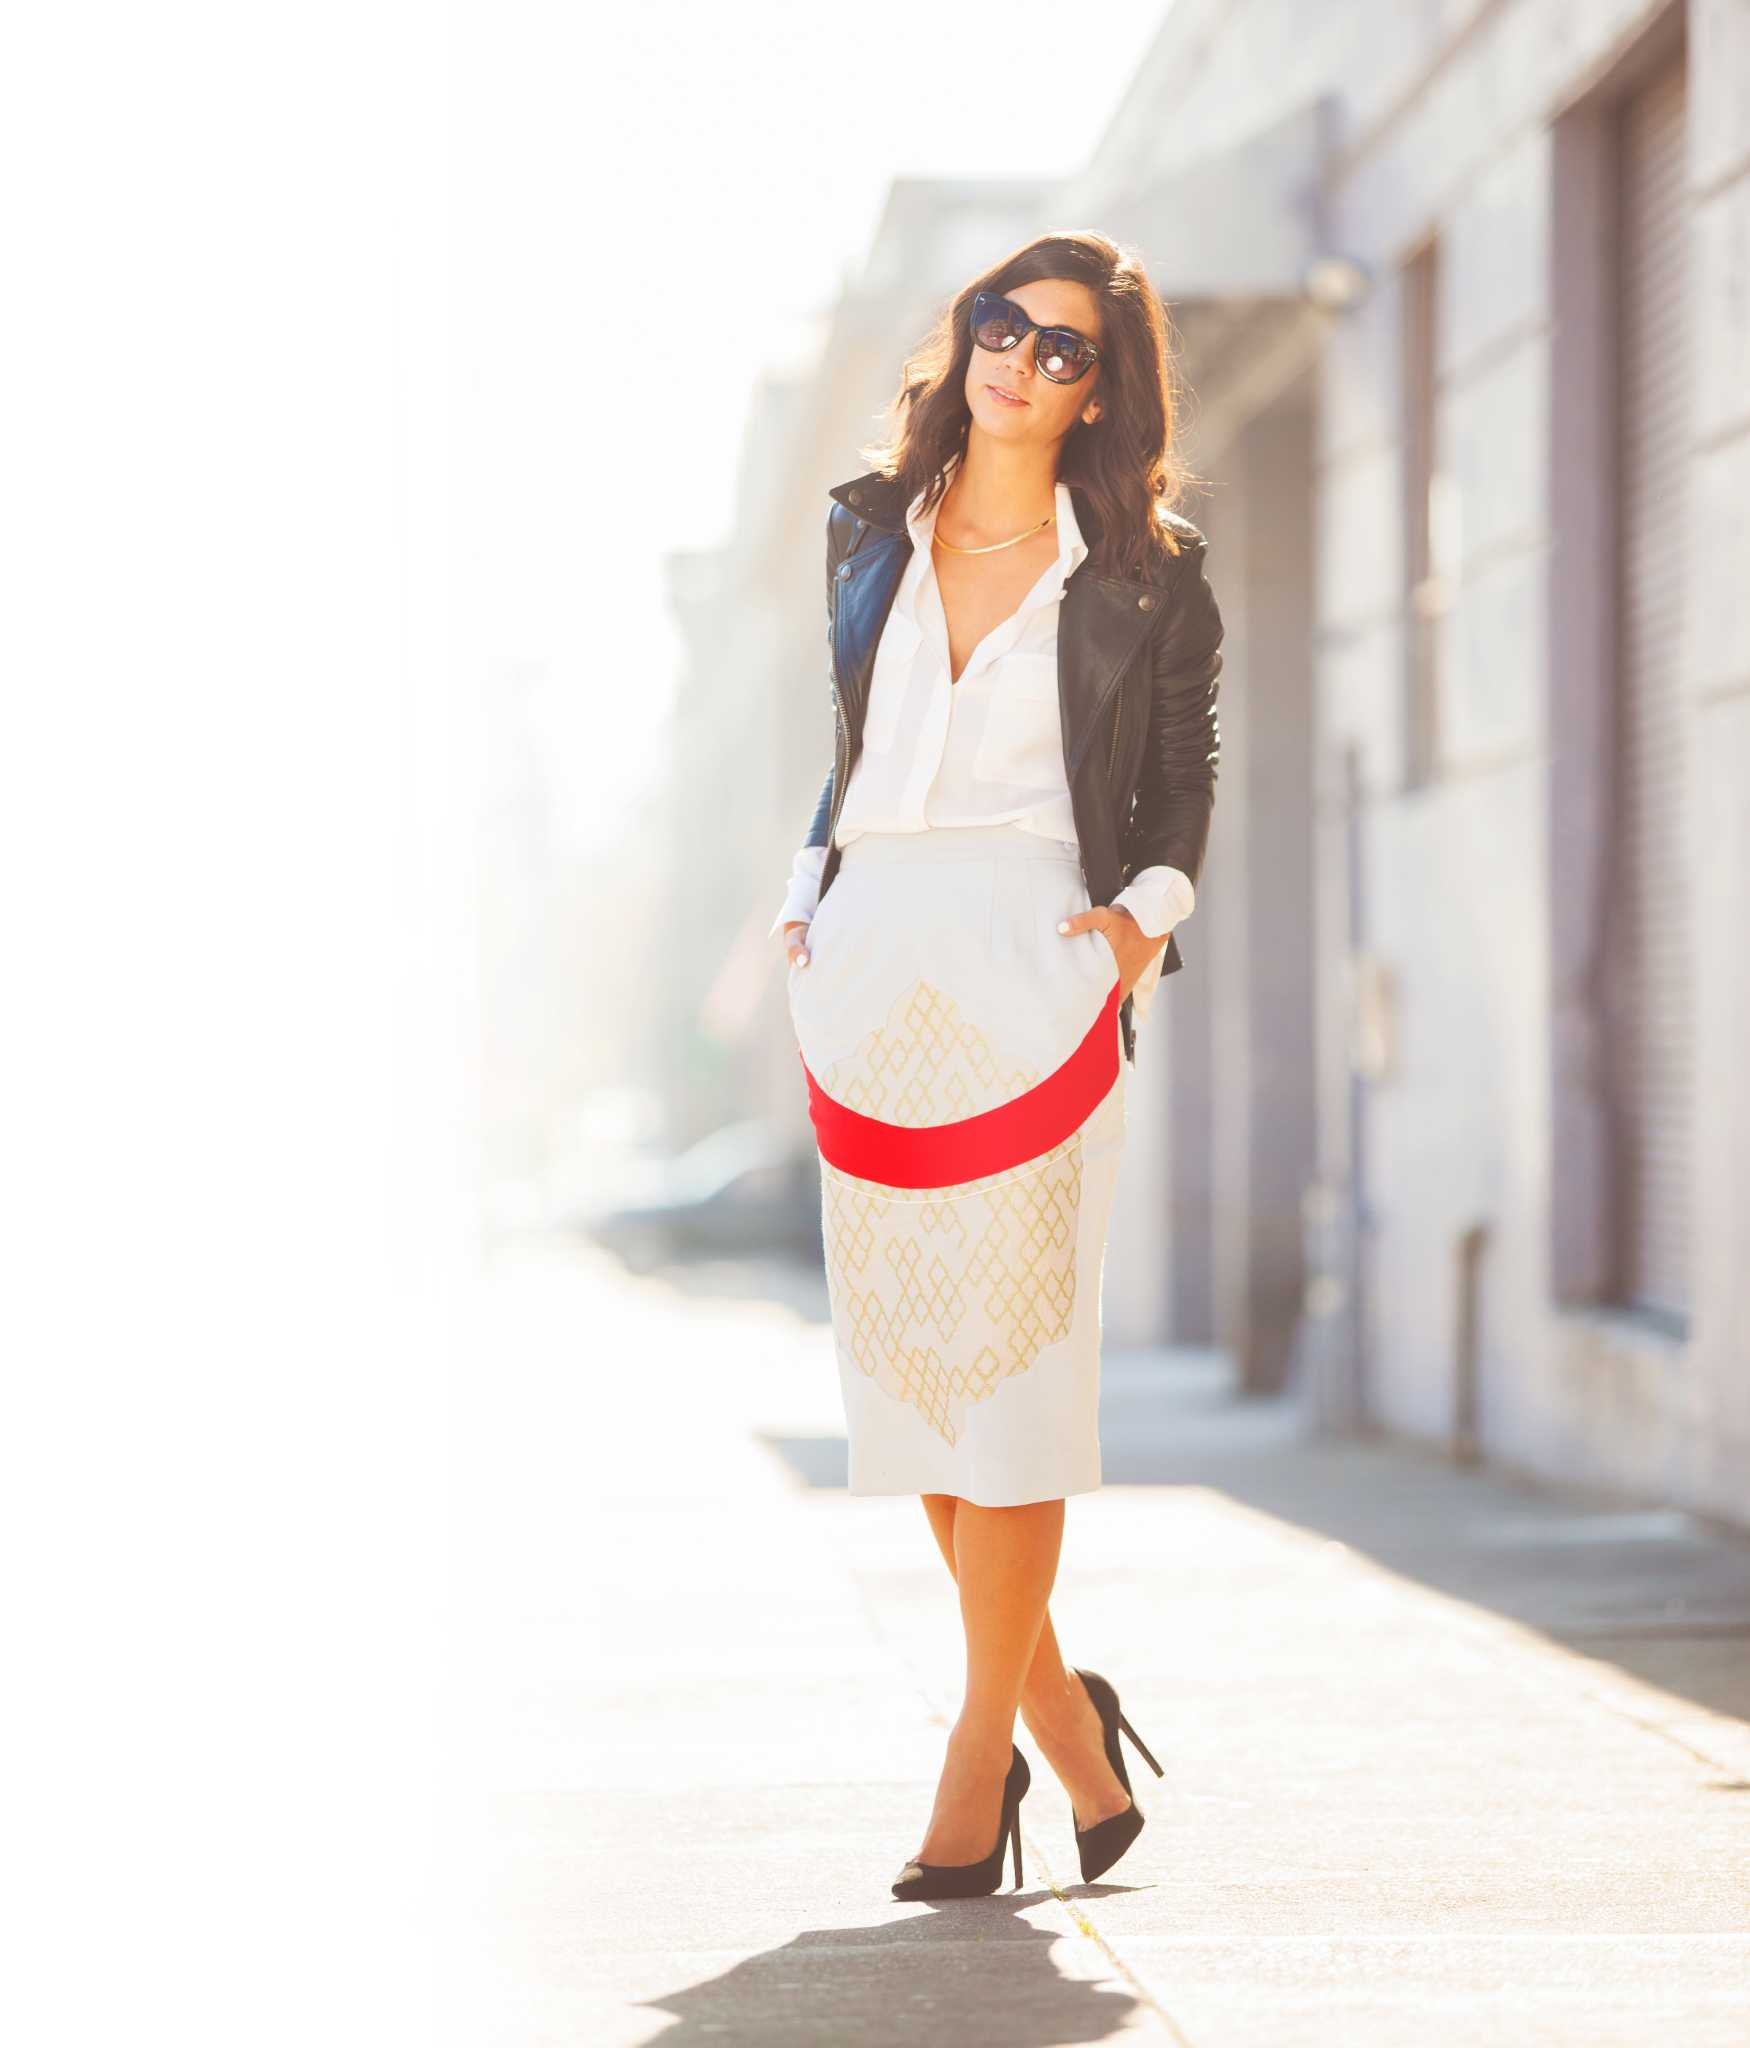 Bandra West Curates Indian Designers With Western Appeal Sfgate